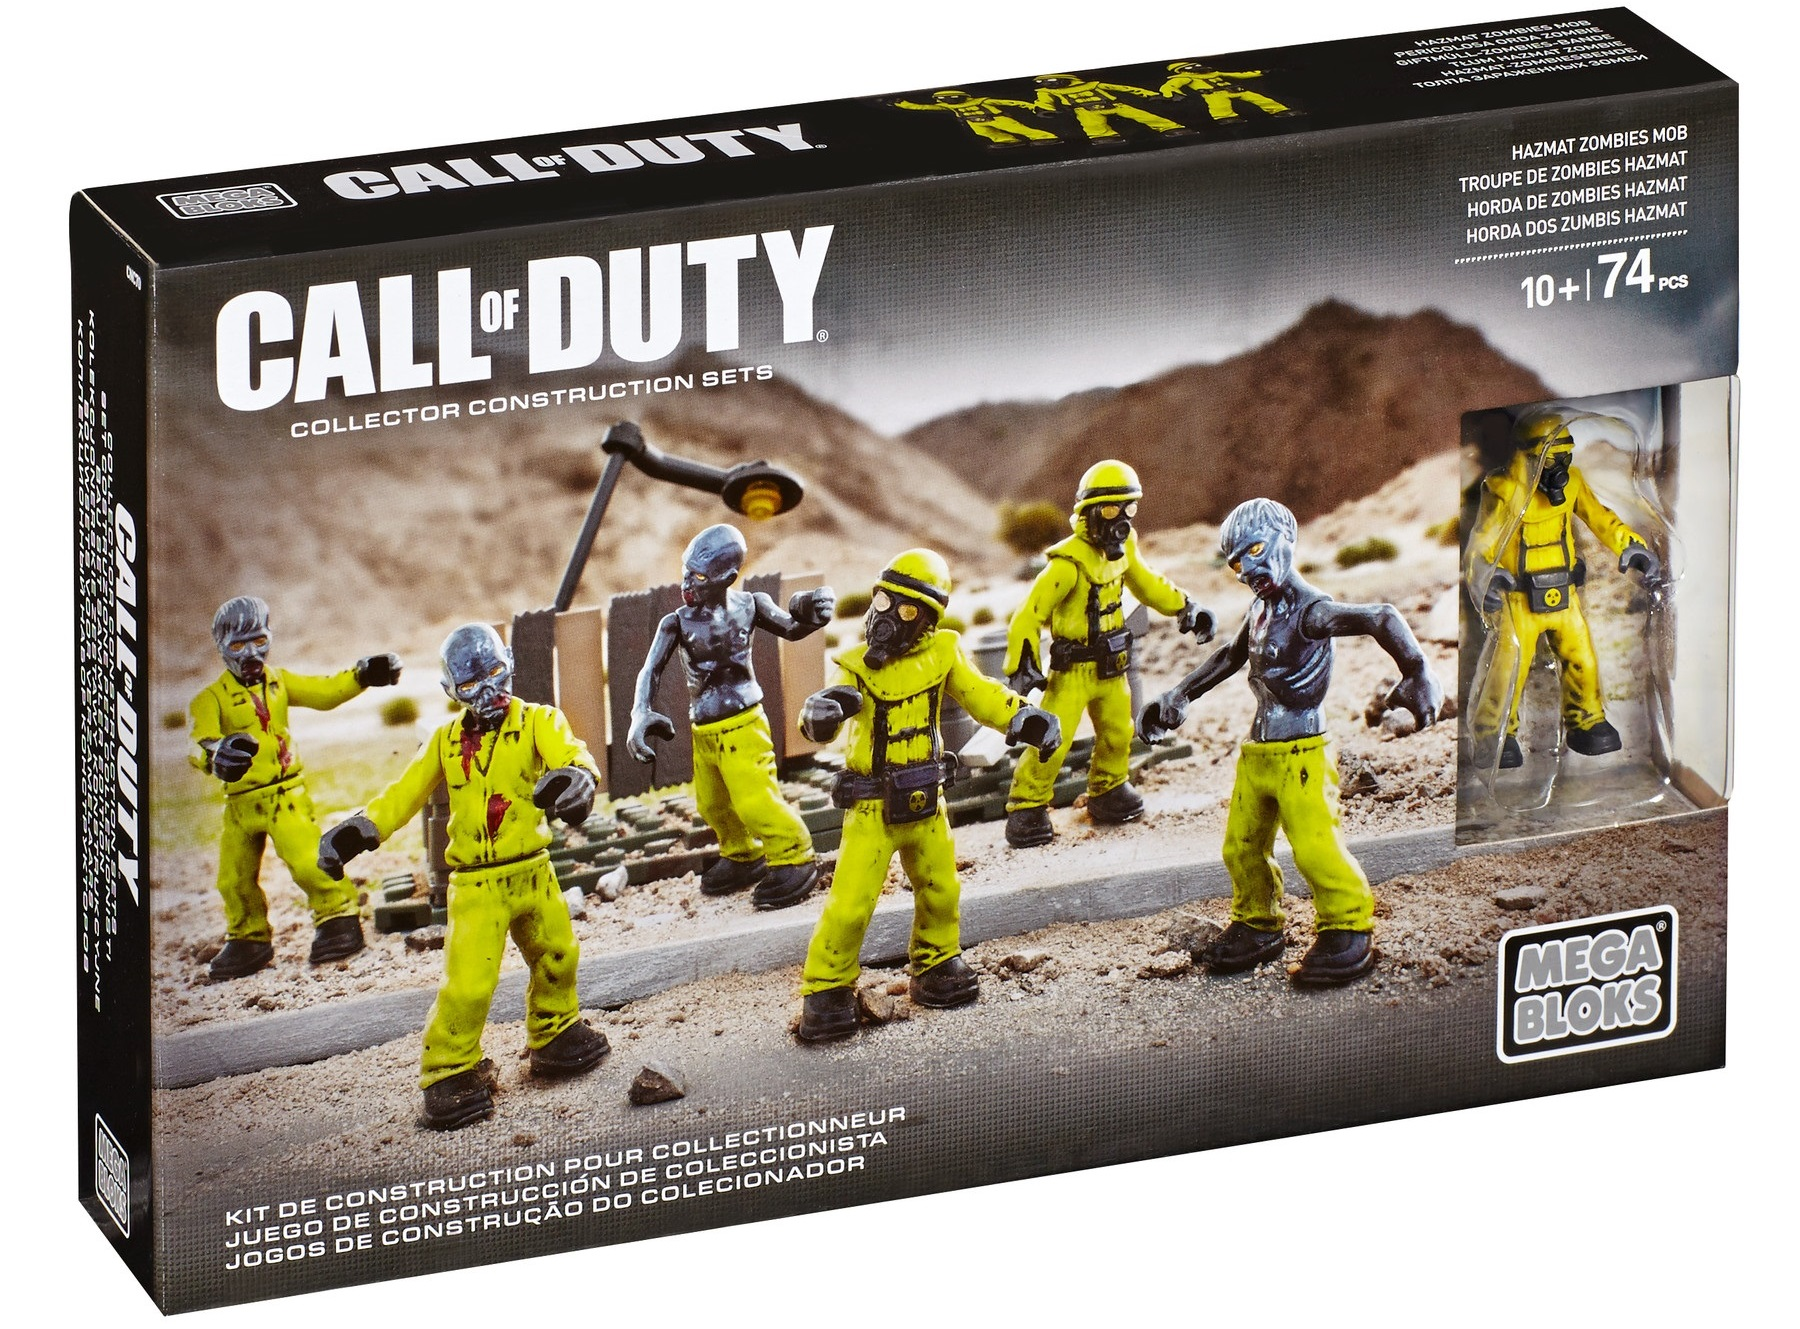 Call of Duty Mega Bloks Hazmat Zombie Mob Figure Pack, Nuketown Mob, features burnt out Zombie figures with gas masks and yellow hazmat suits.